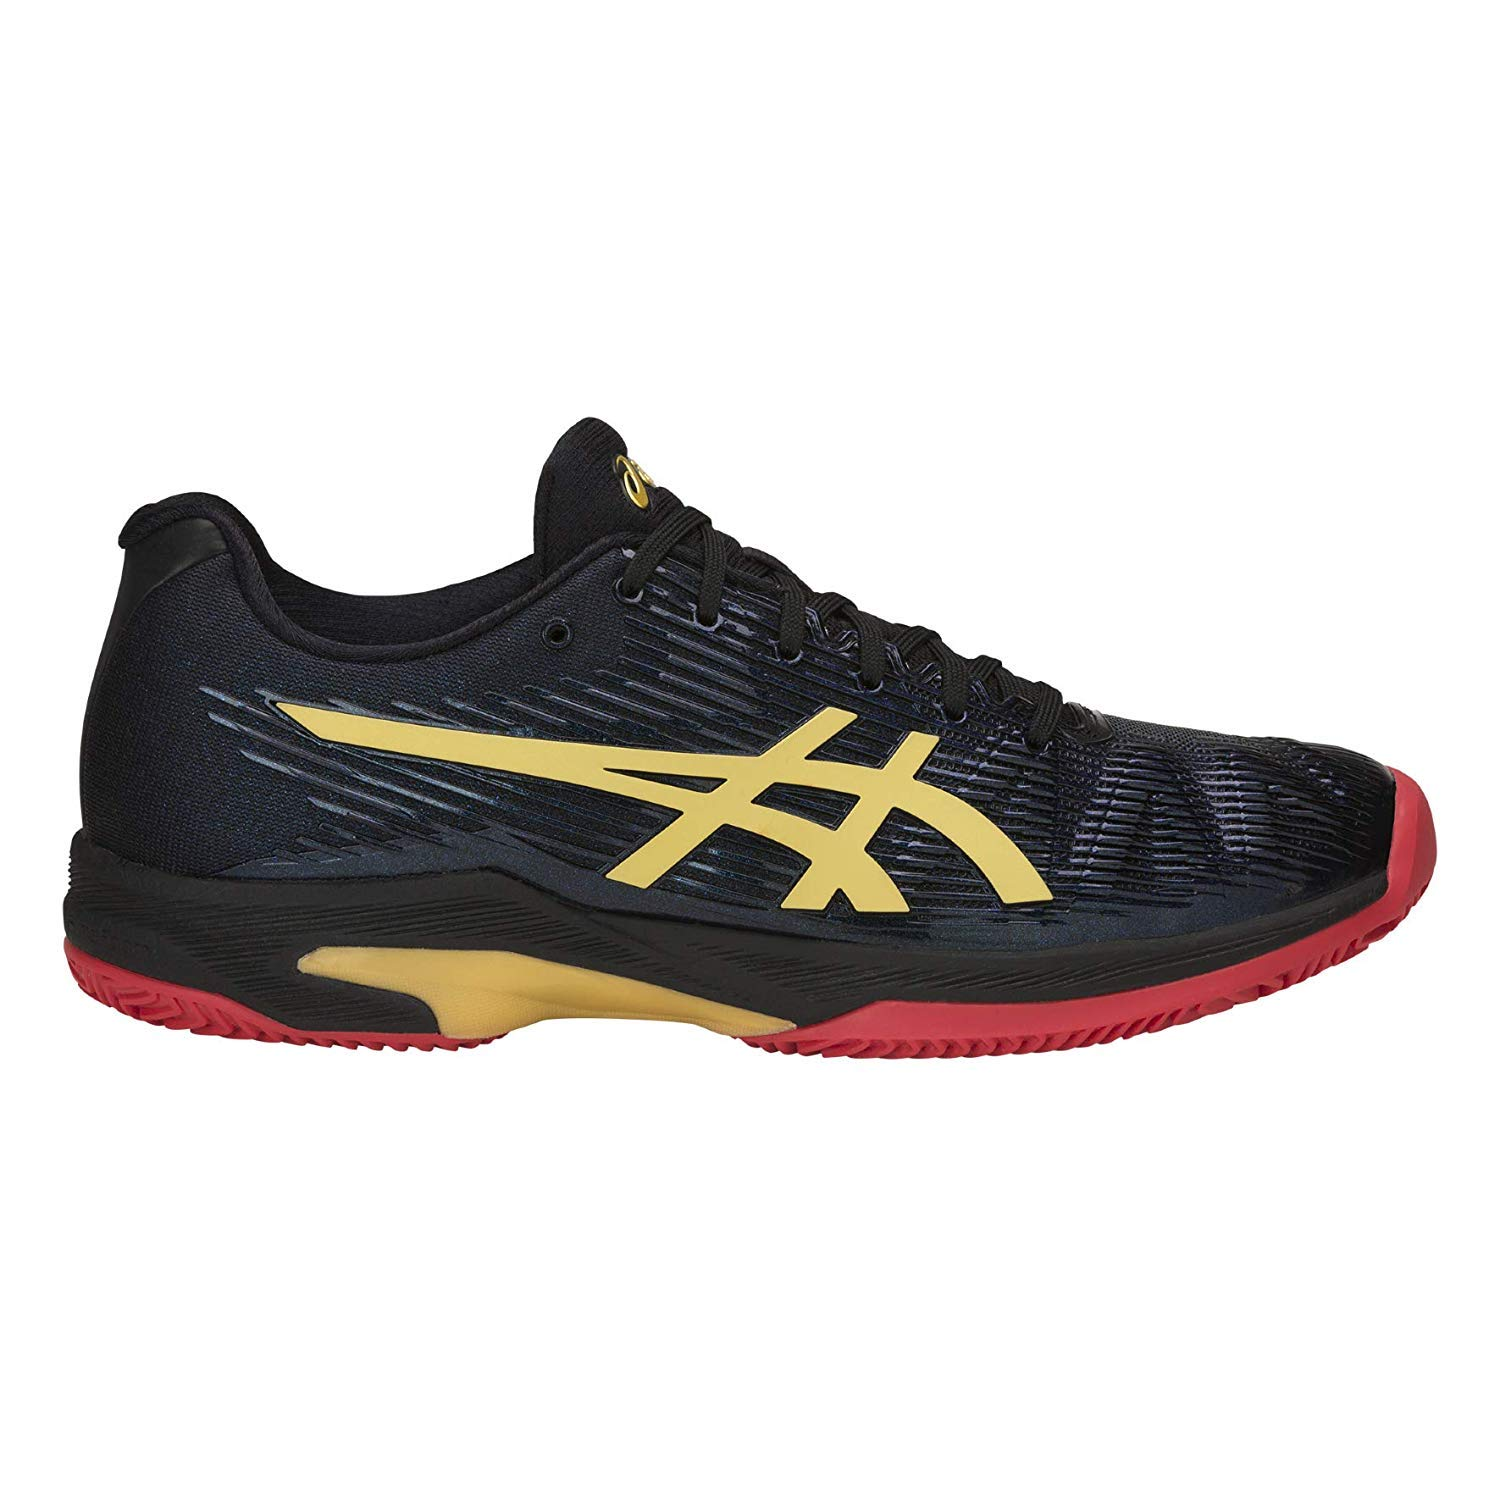 Noir or 49 EU ASICS - Solution Speed FF L.E. Clay Hommes Chaussure de Course (Noir Or)